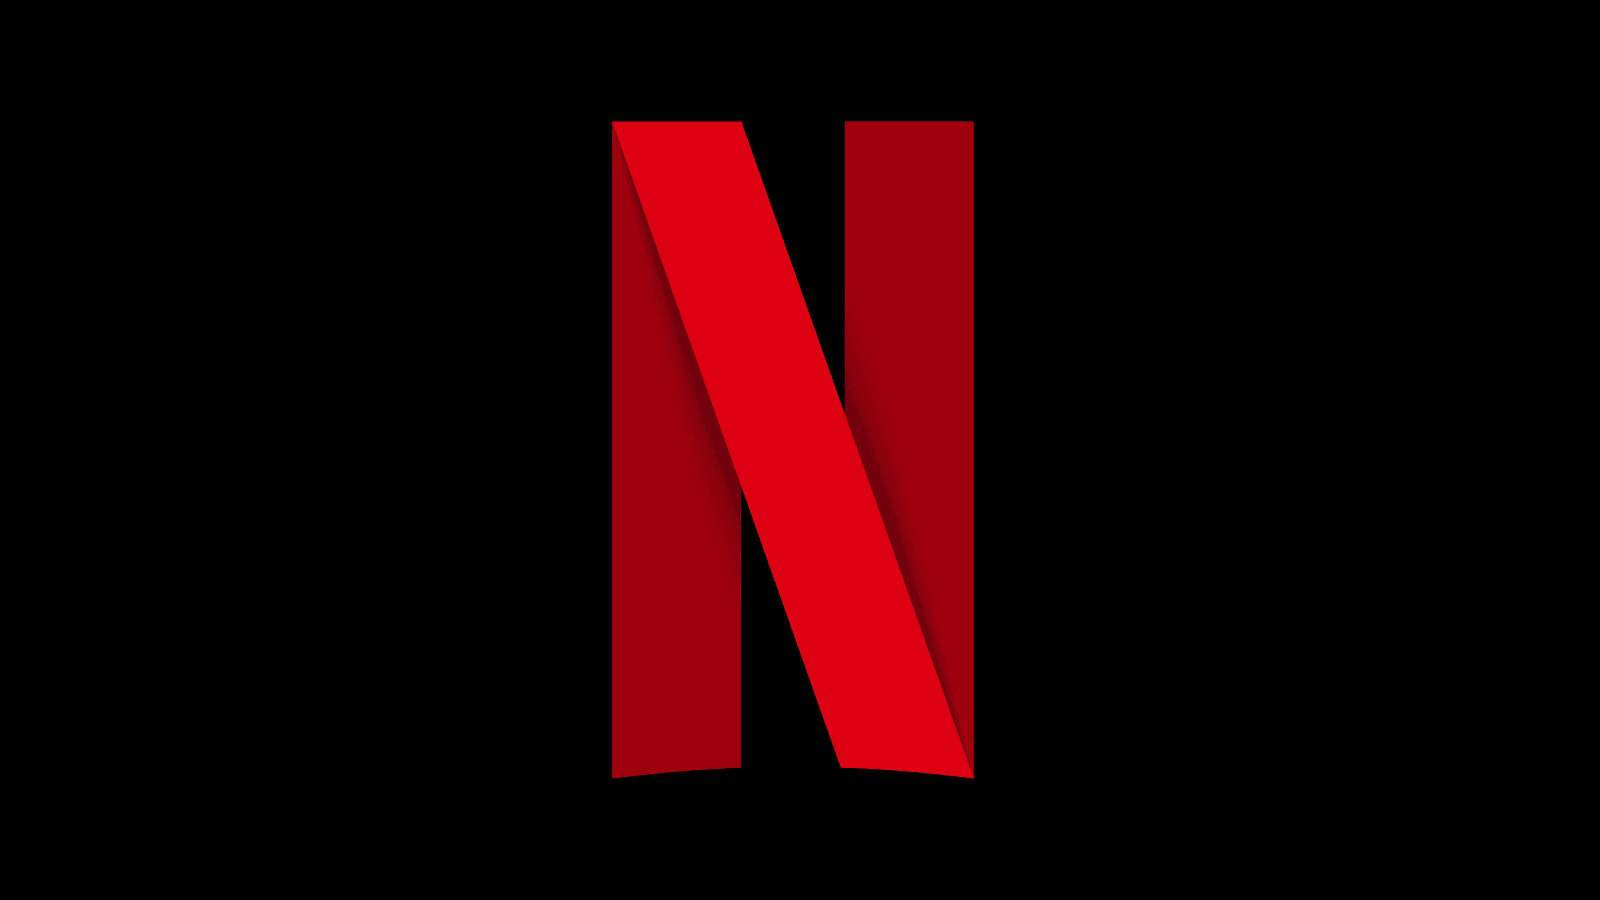 Arrived and dominated! New Netflix movies are a hit! - Aroged